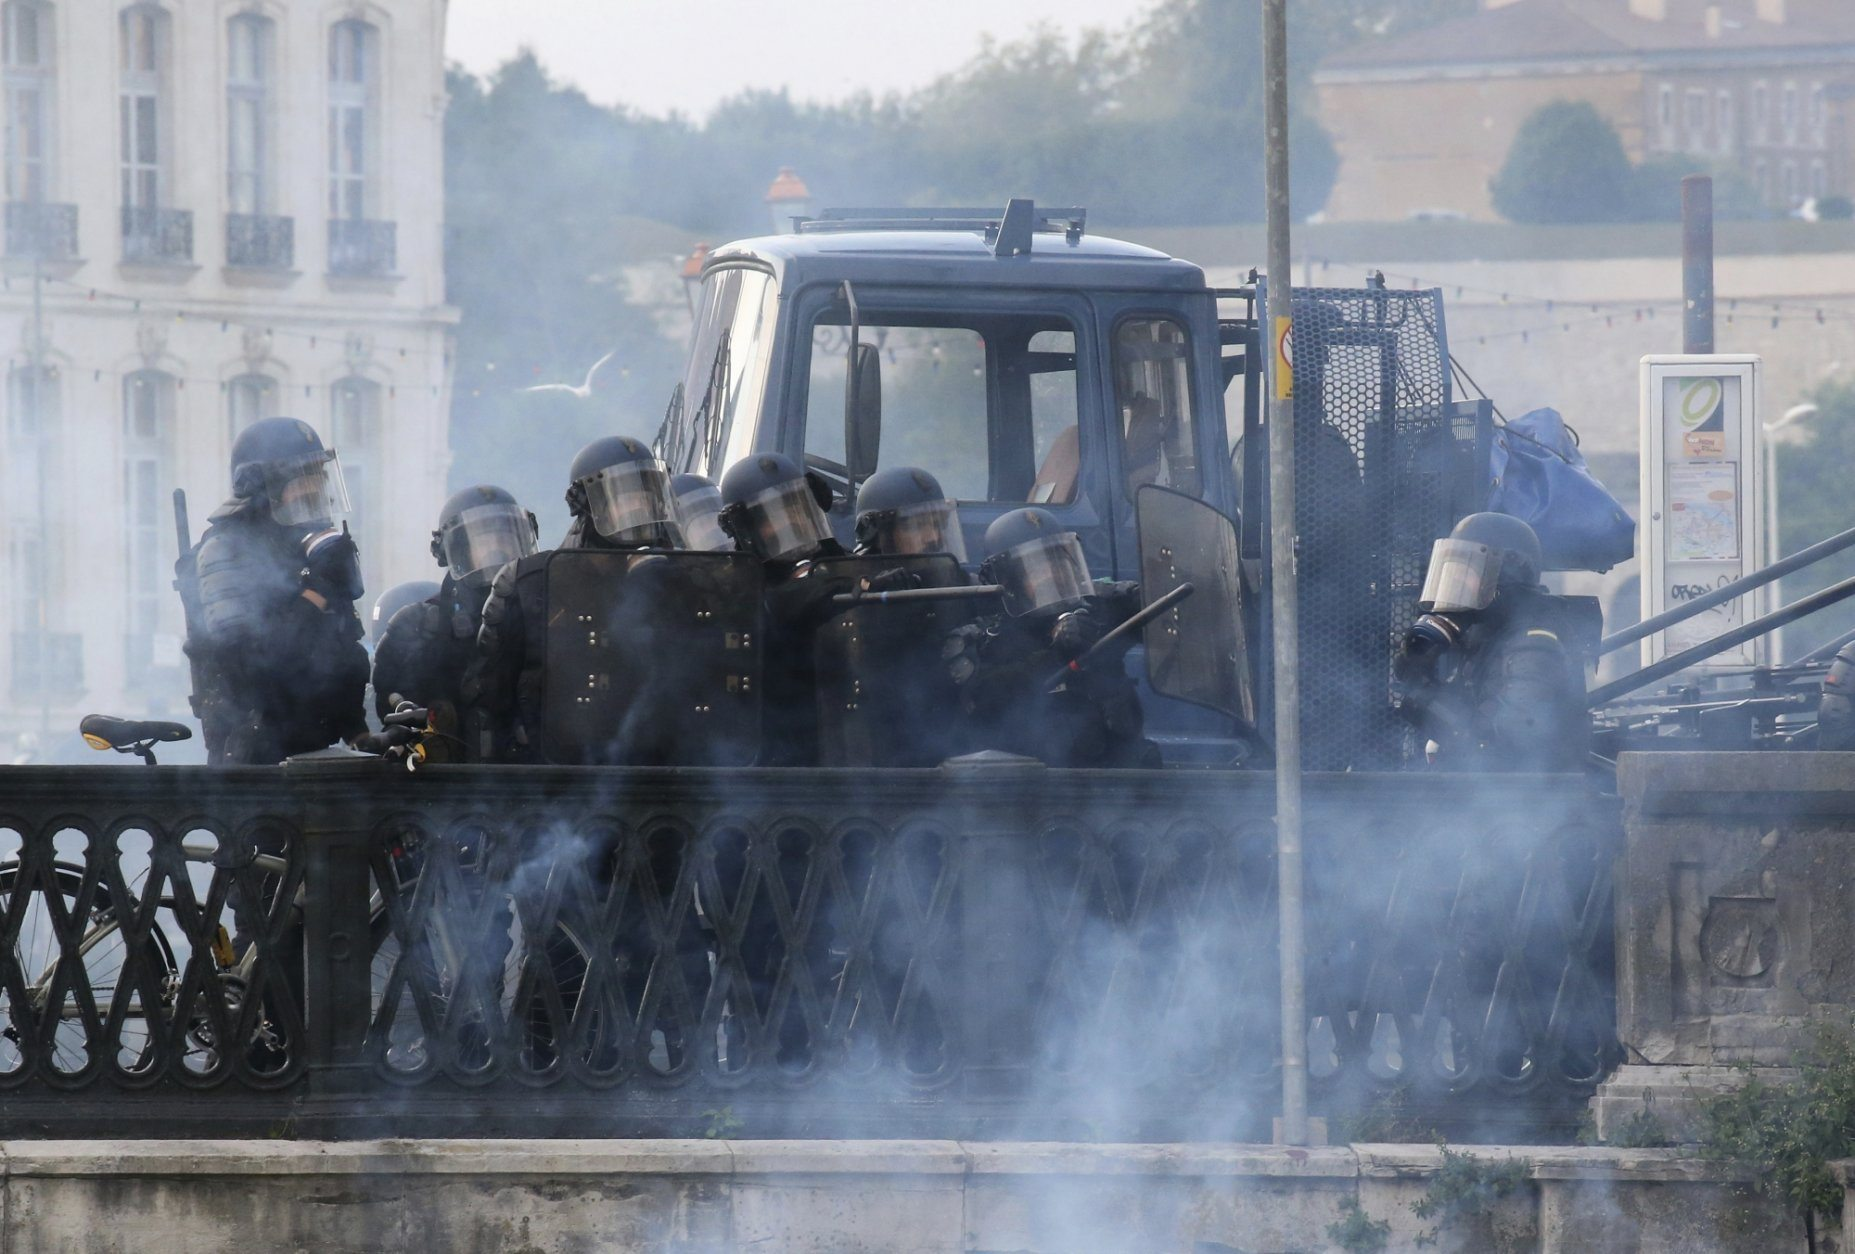 Police fire gather behind their shields as they clash with protestors in Bayonne, France, Saturday, Aug. 24, 2019. World leaders and protesters are converging on the southern French resort town of Biarritz for the G-7 summit. Police have fired water cannon at about 400 anti-capitalist protesters blocking roads in a town near the venue of the G-7 summit. A few protesters threw rocks at police but the crowd in Bayonne was largely peaceful. (AP Photo/Bob Edme)